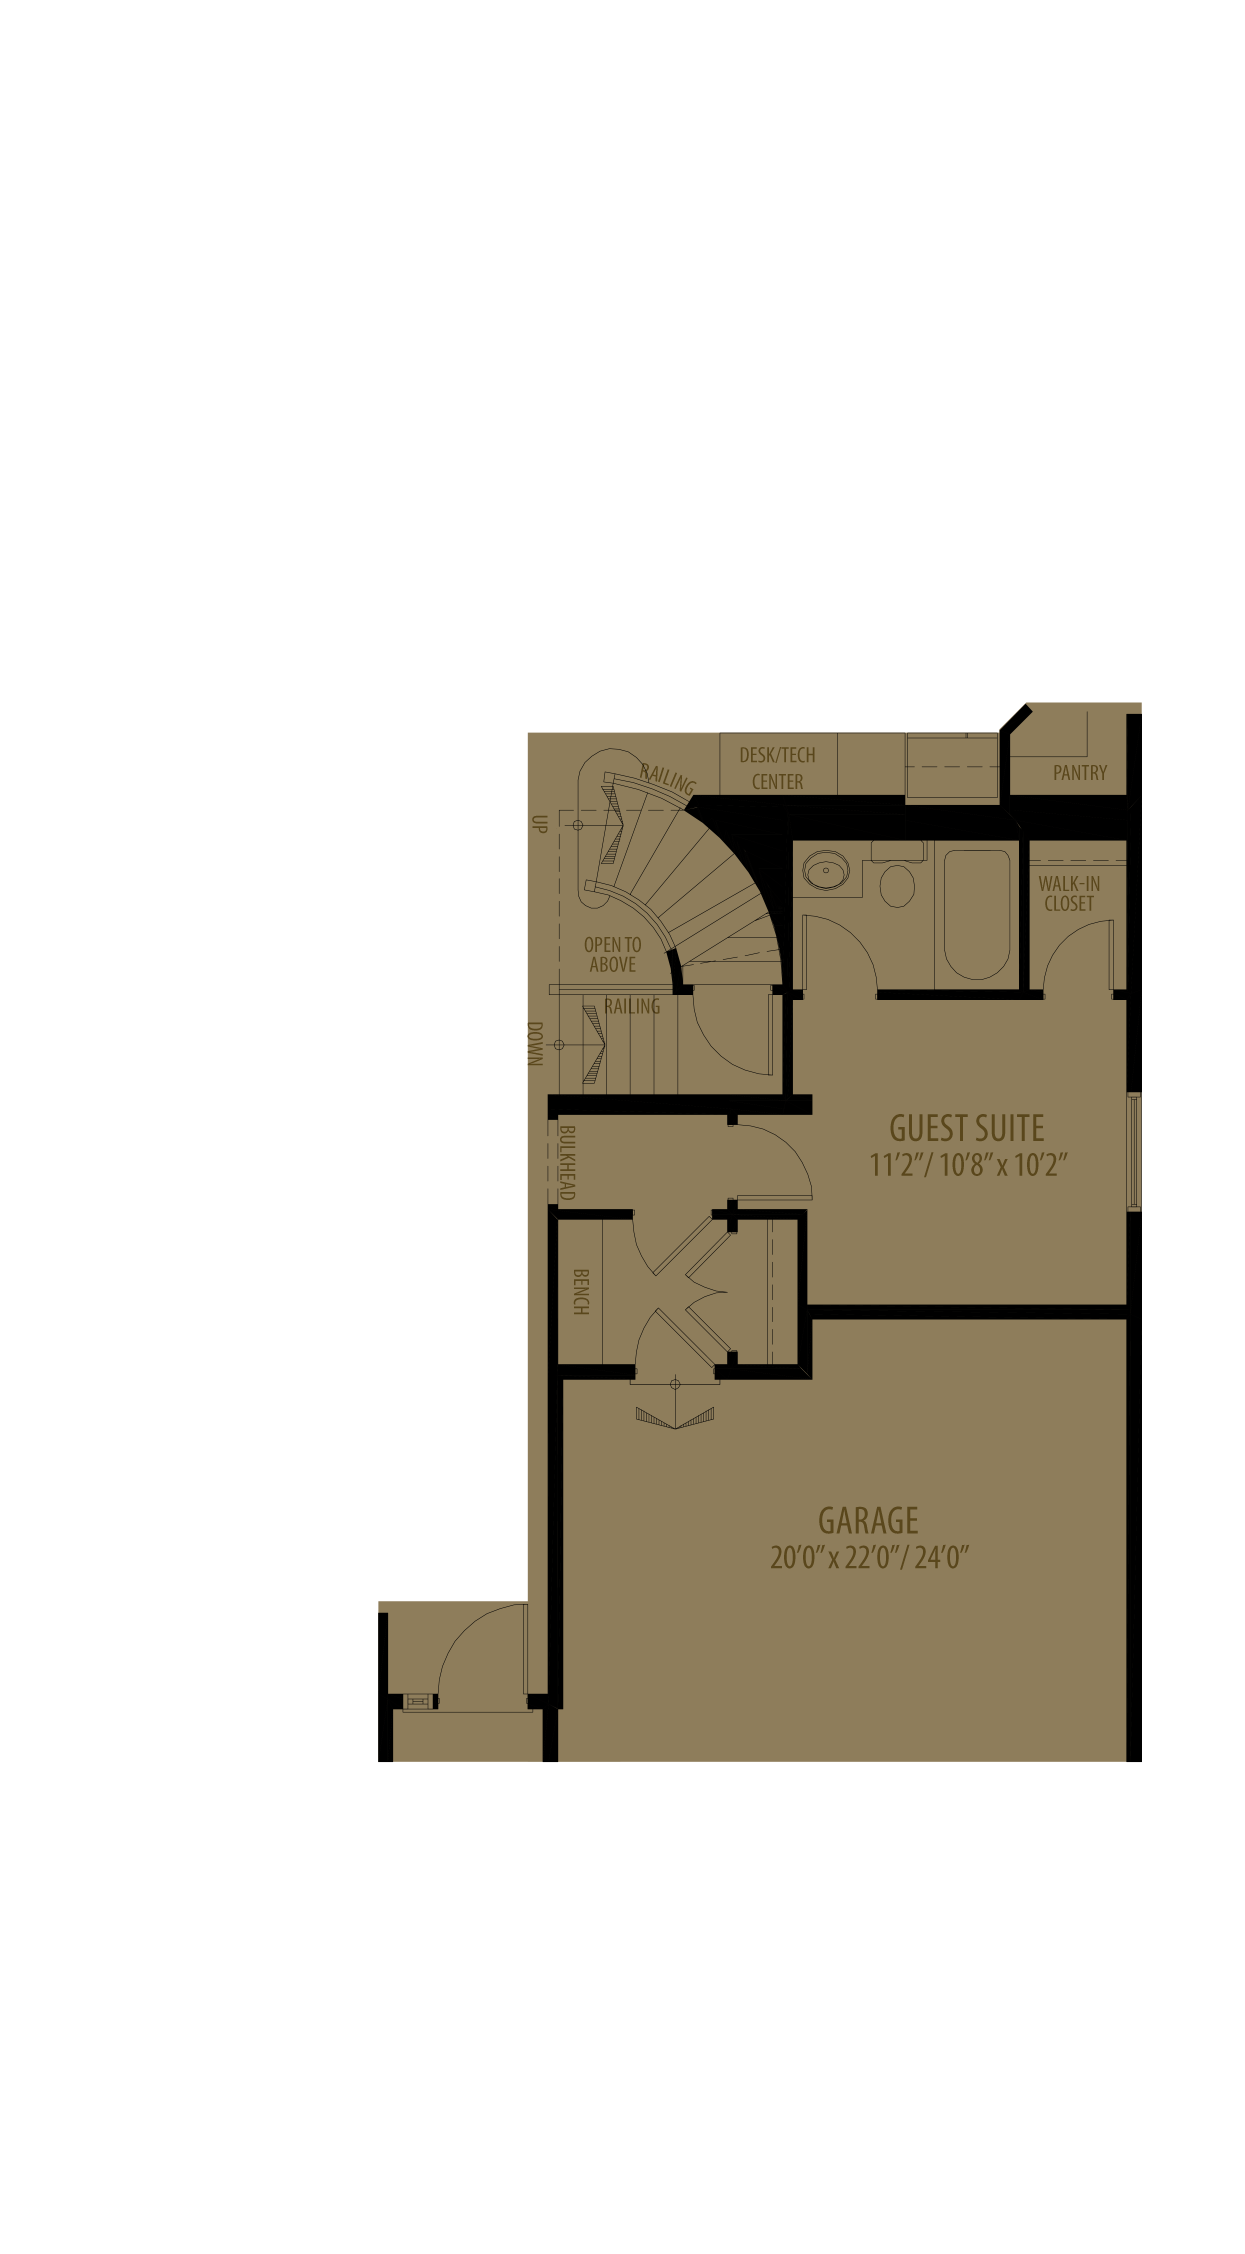 Guest Suite Adds176 Sq Ft